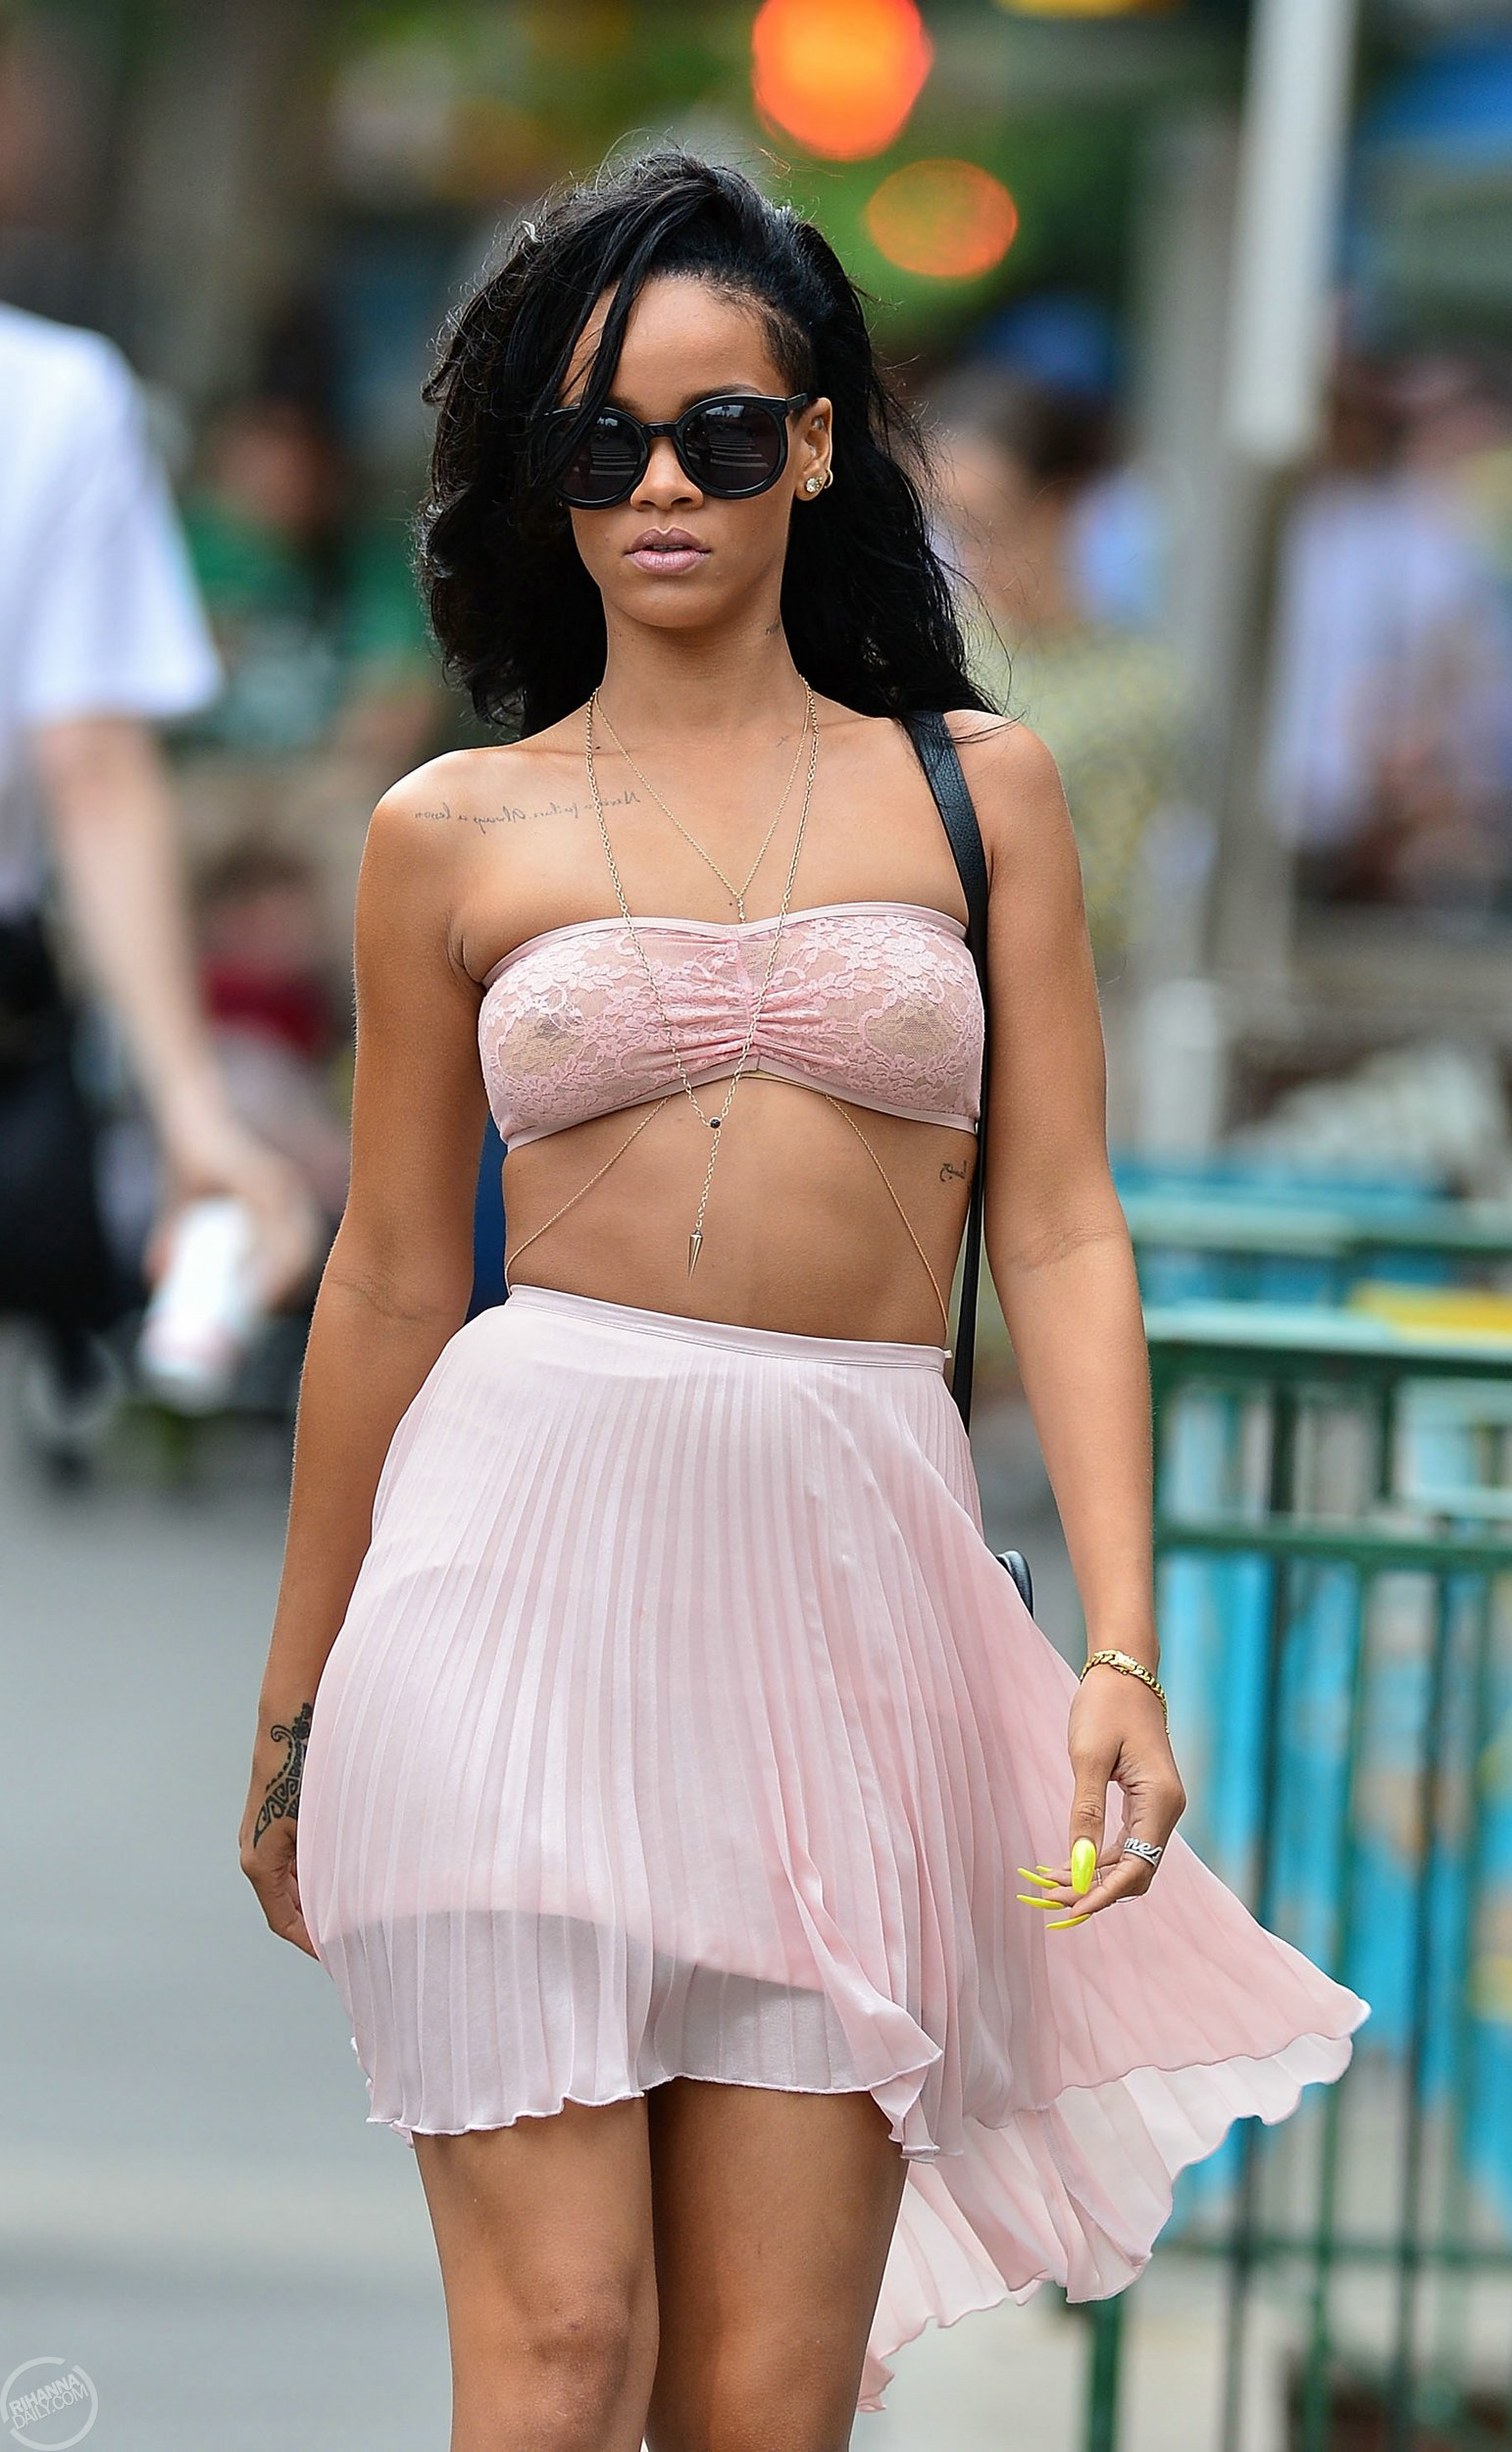 Out & About In New York [11 June 2012]